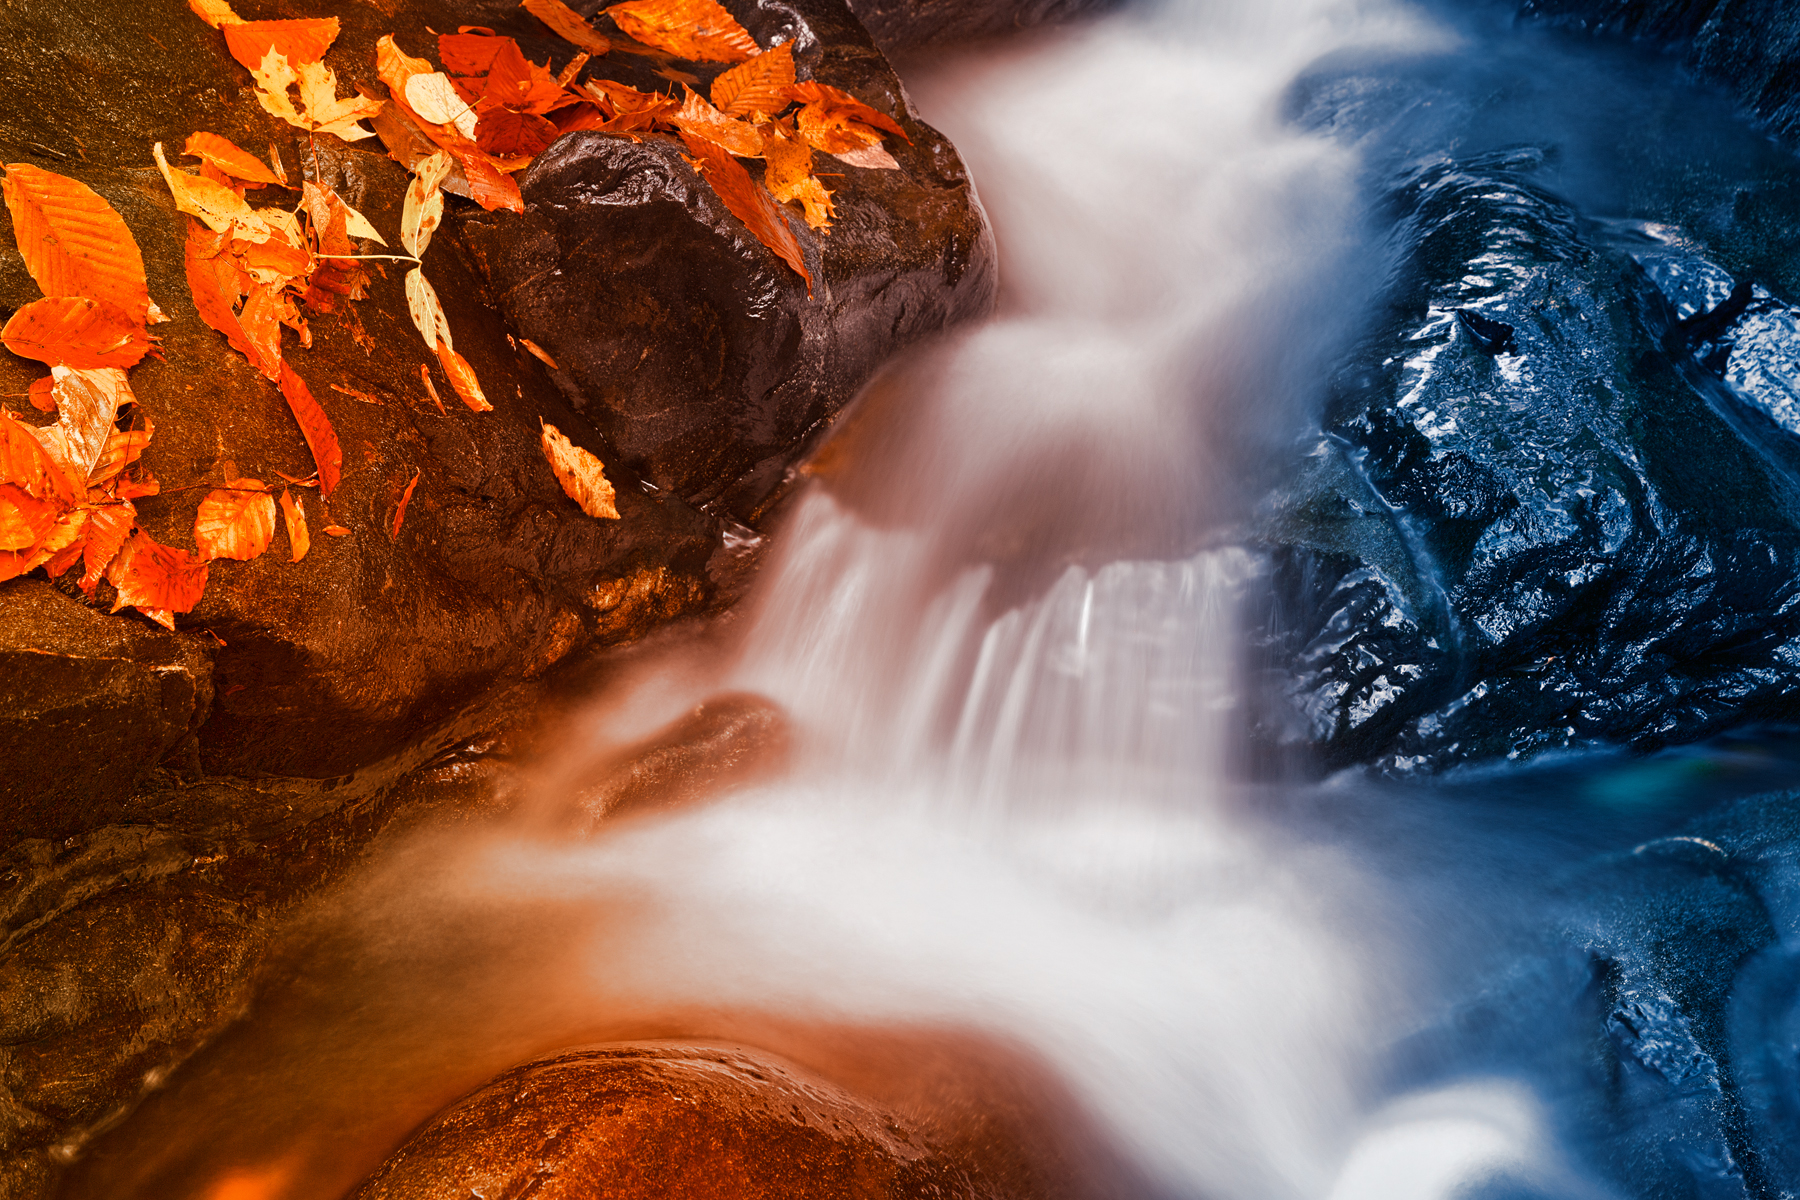 Stream of Fire & Ice - HDR, Abstract, Orange, Rocks, Rock, HQ Photo